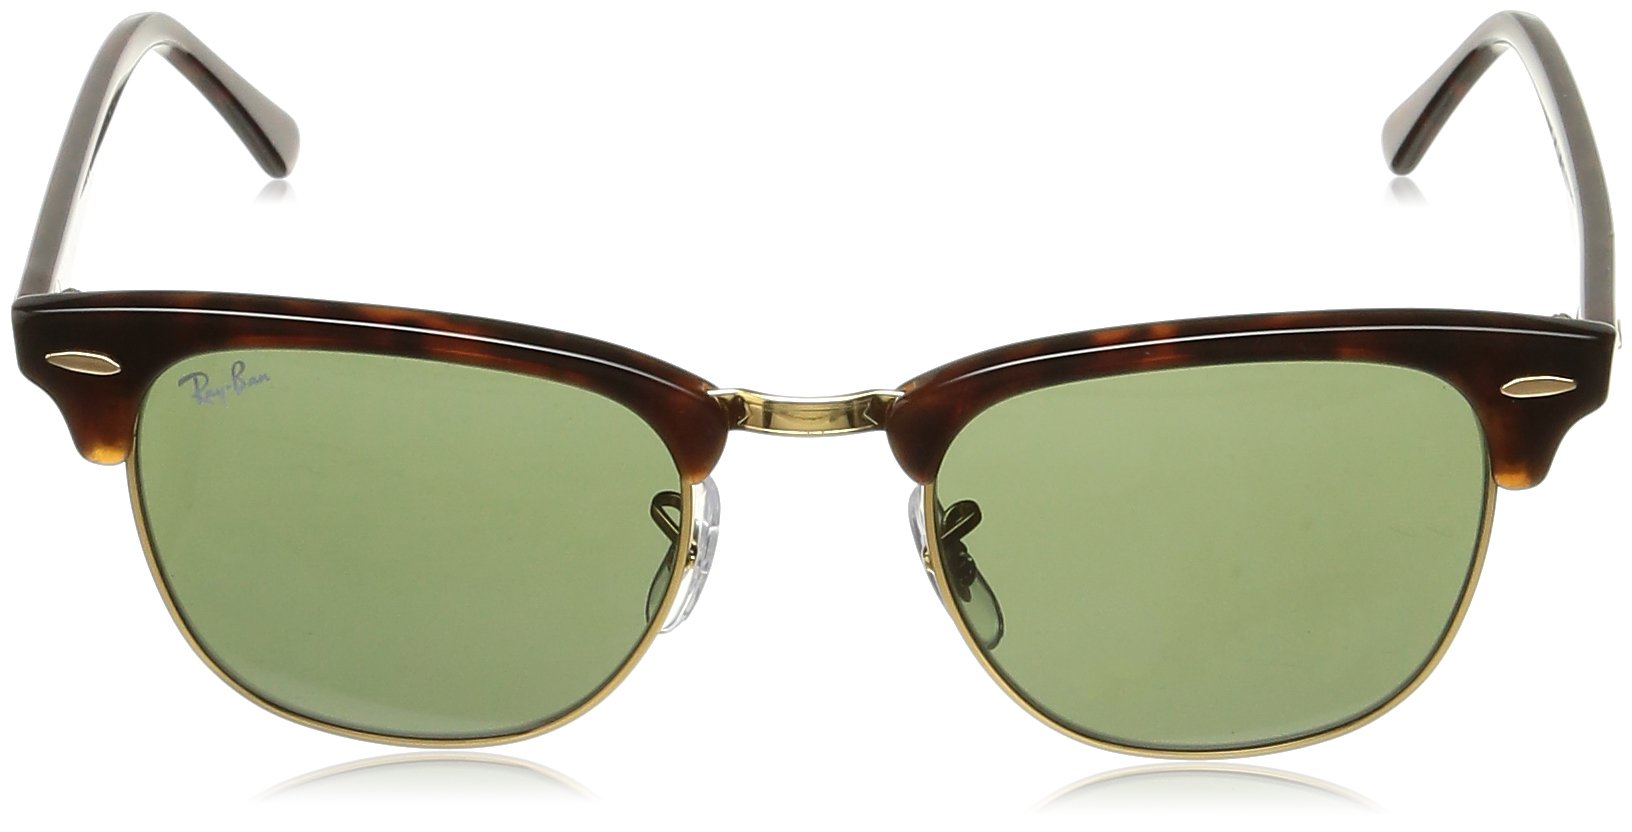 Ray-Ban CLUBMASTER - MOCK TORTOISE/ ARISTA Frame CRYSTAL GREEN Lenses 49mm Non-Polarized by Ray-Ban (Image #2)